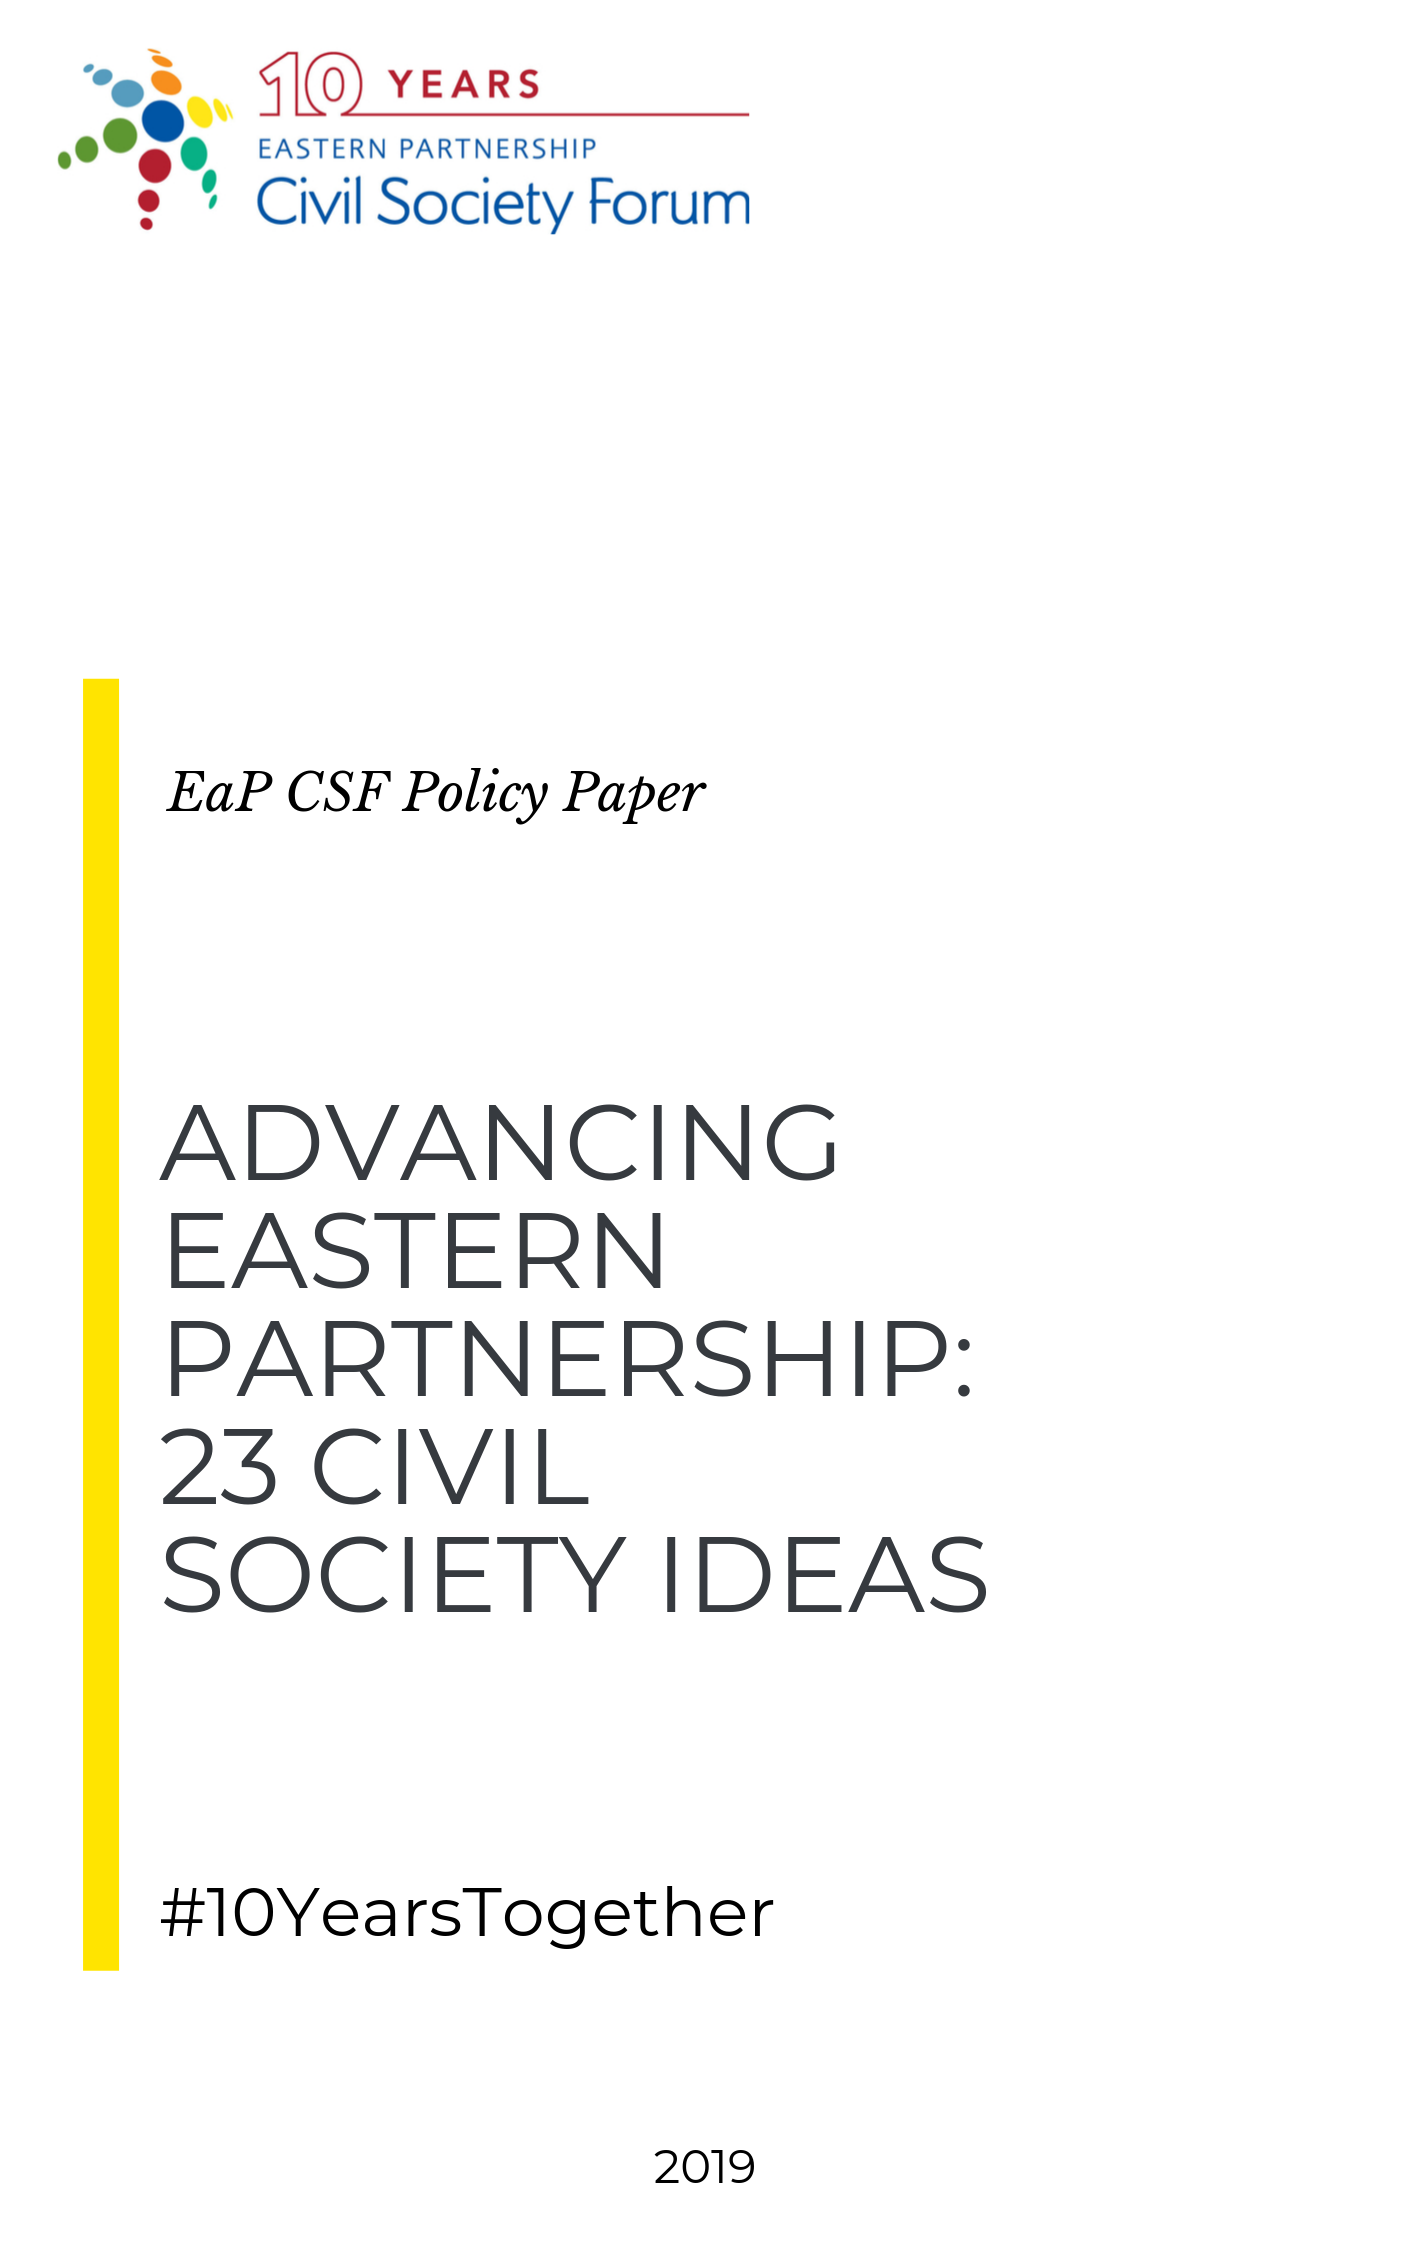 Advancing Eastern Partnership: 23 Civil Society Ideas